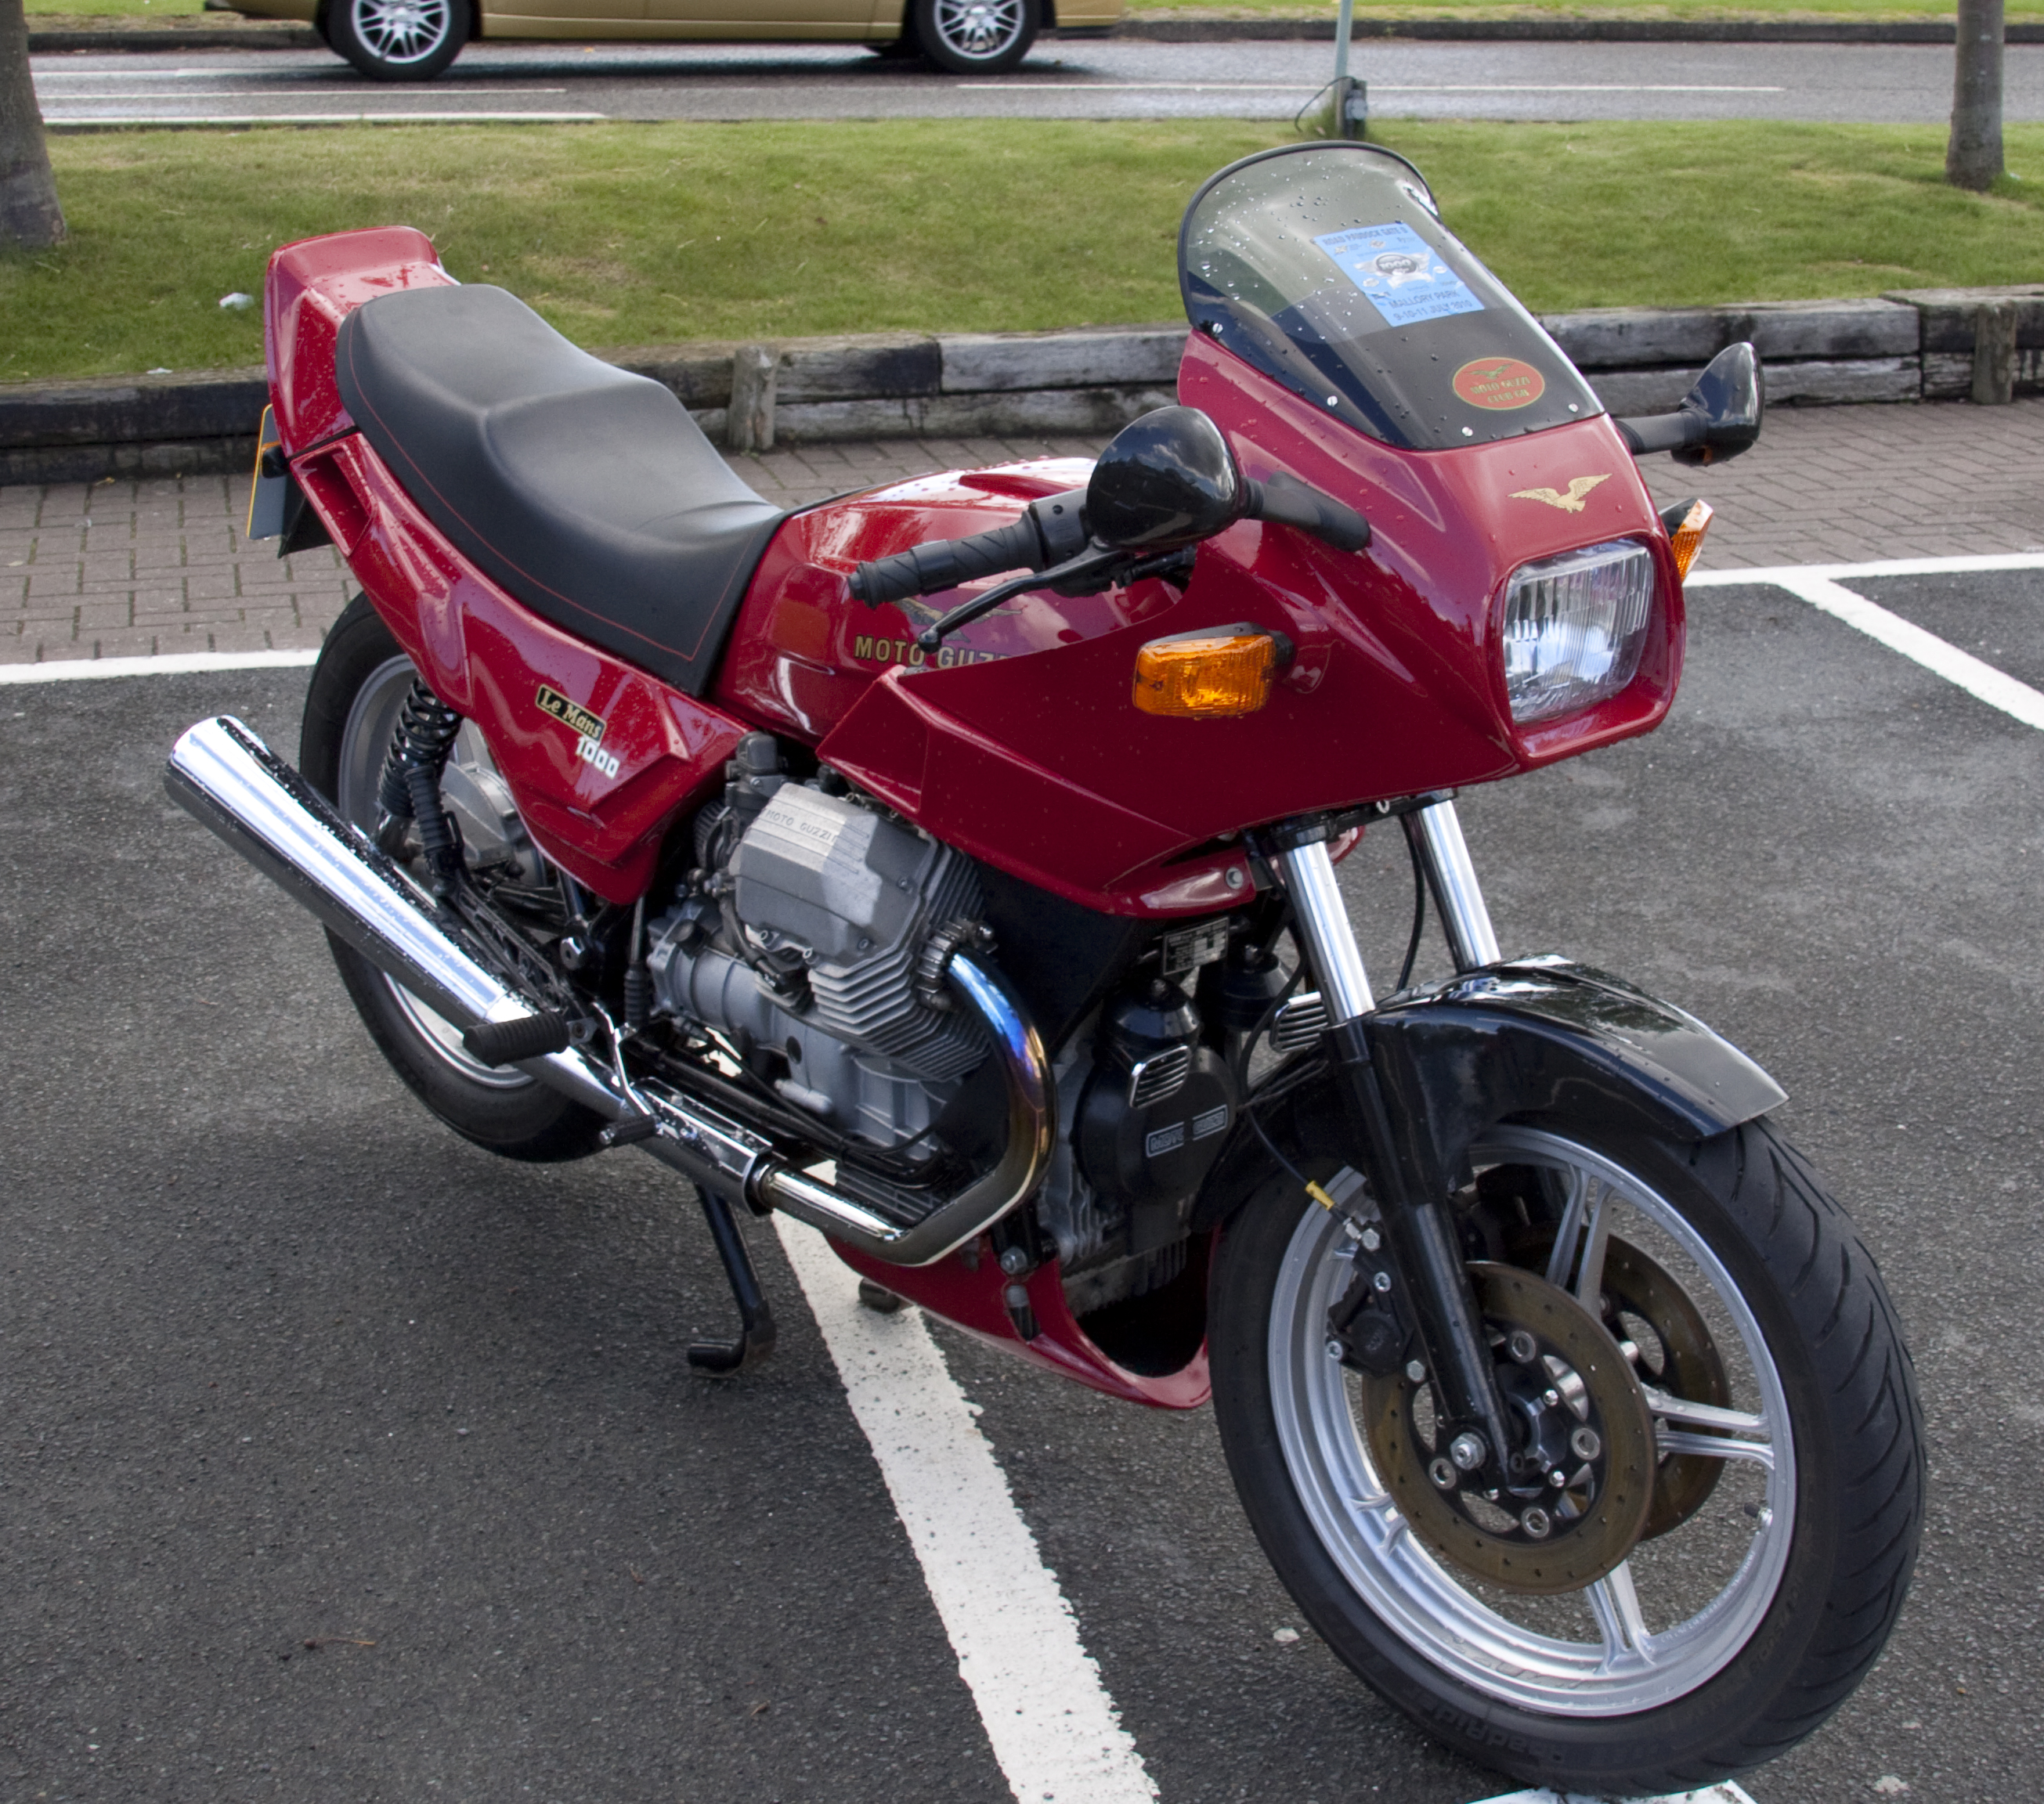 1989 moto guzzi le mans 1000 pics specs and information. Black Bedroom Furniture Sets. Home Design Ideas